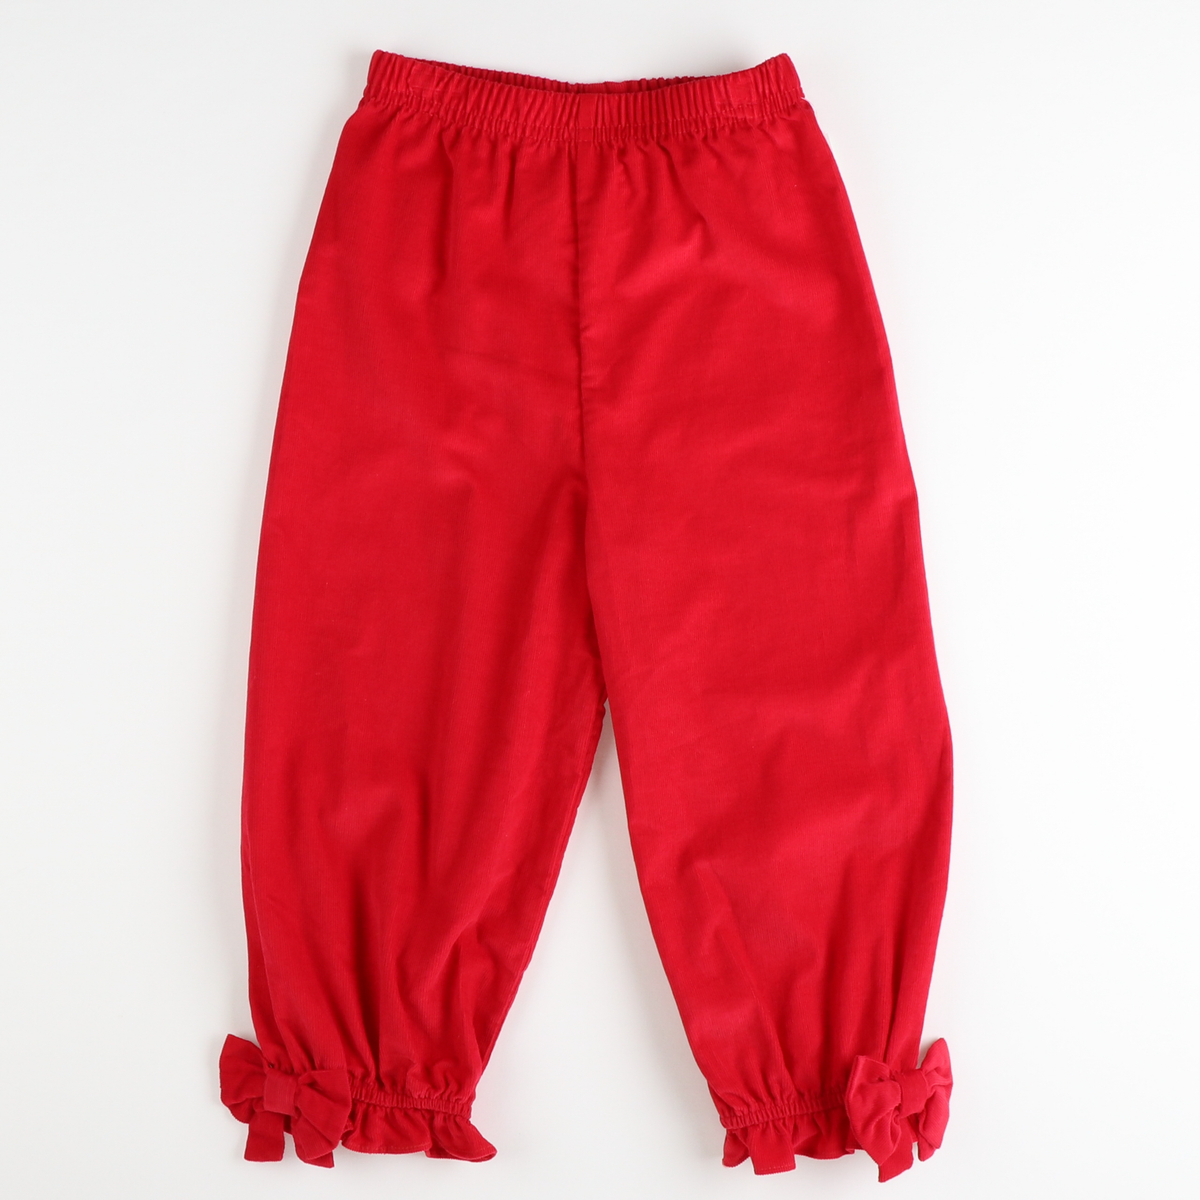 Bow Pants - Red Corduroy